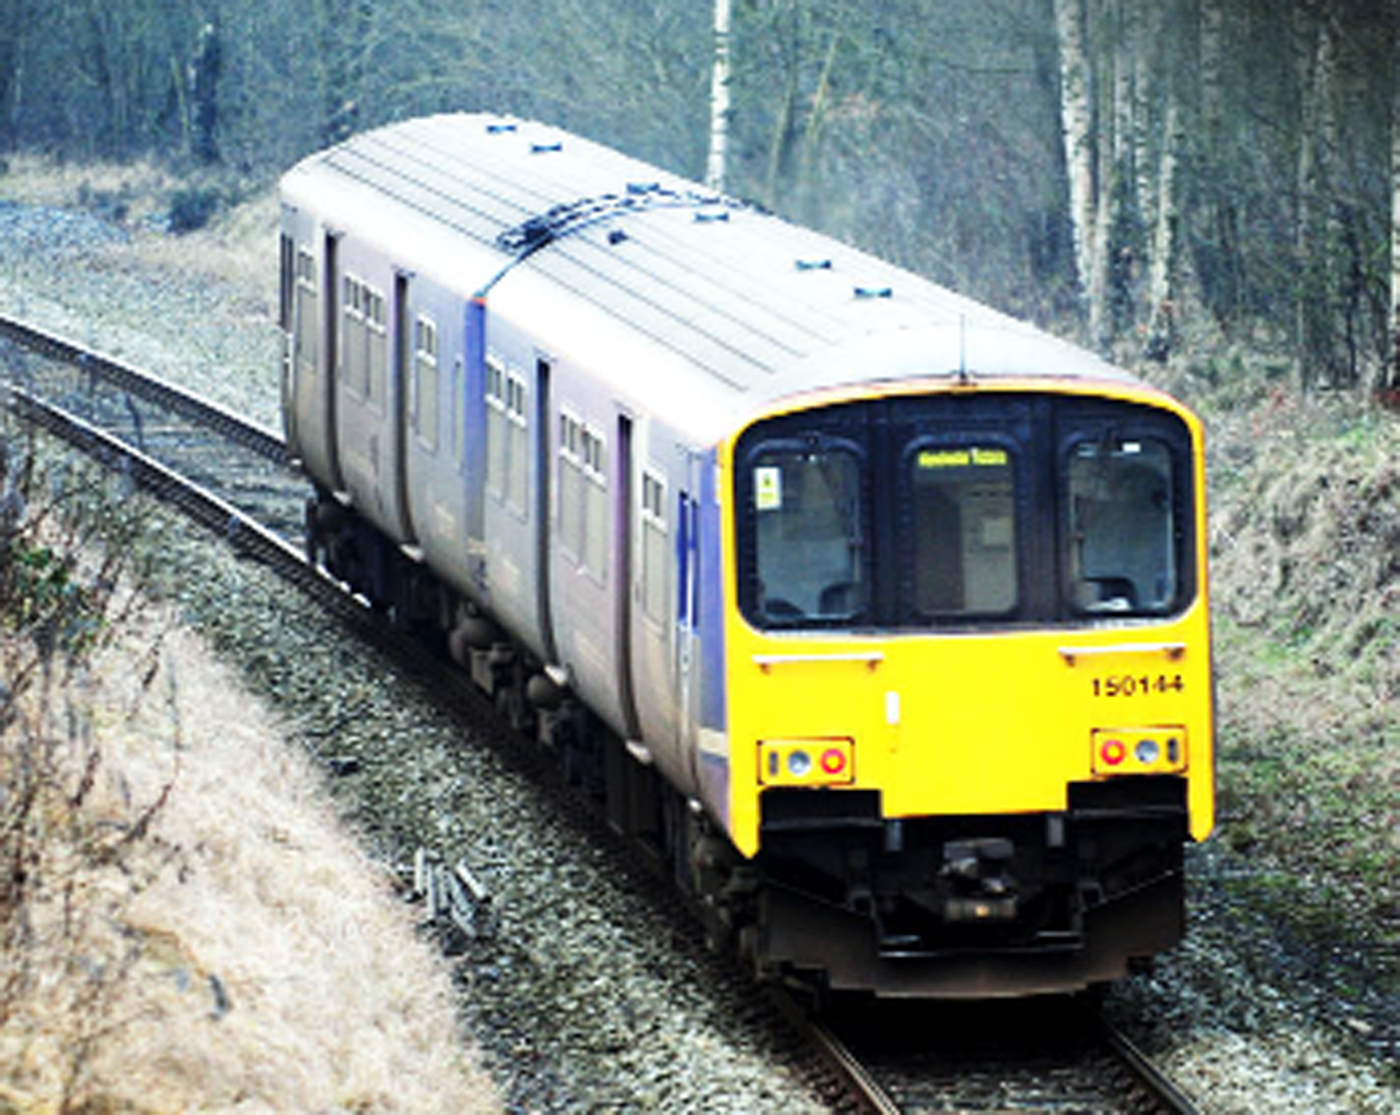 Campaigners in call to electrify East Lancs railway networke